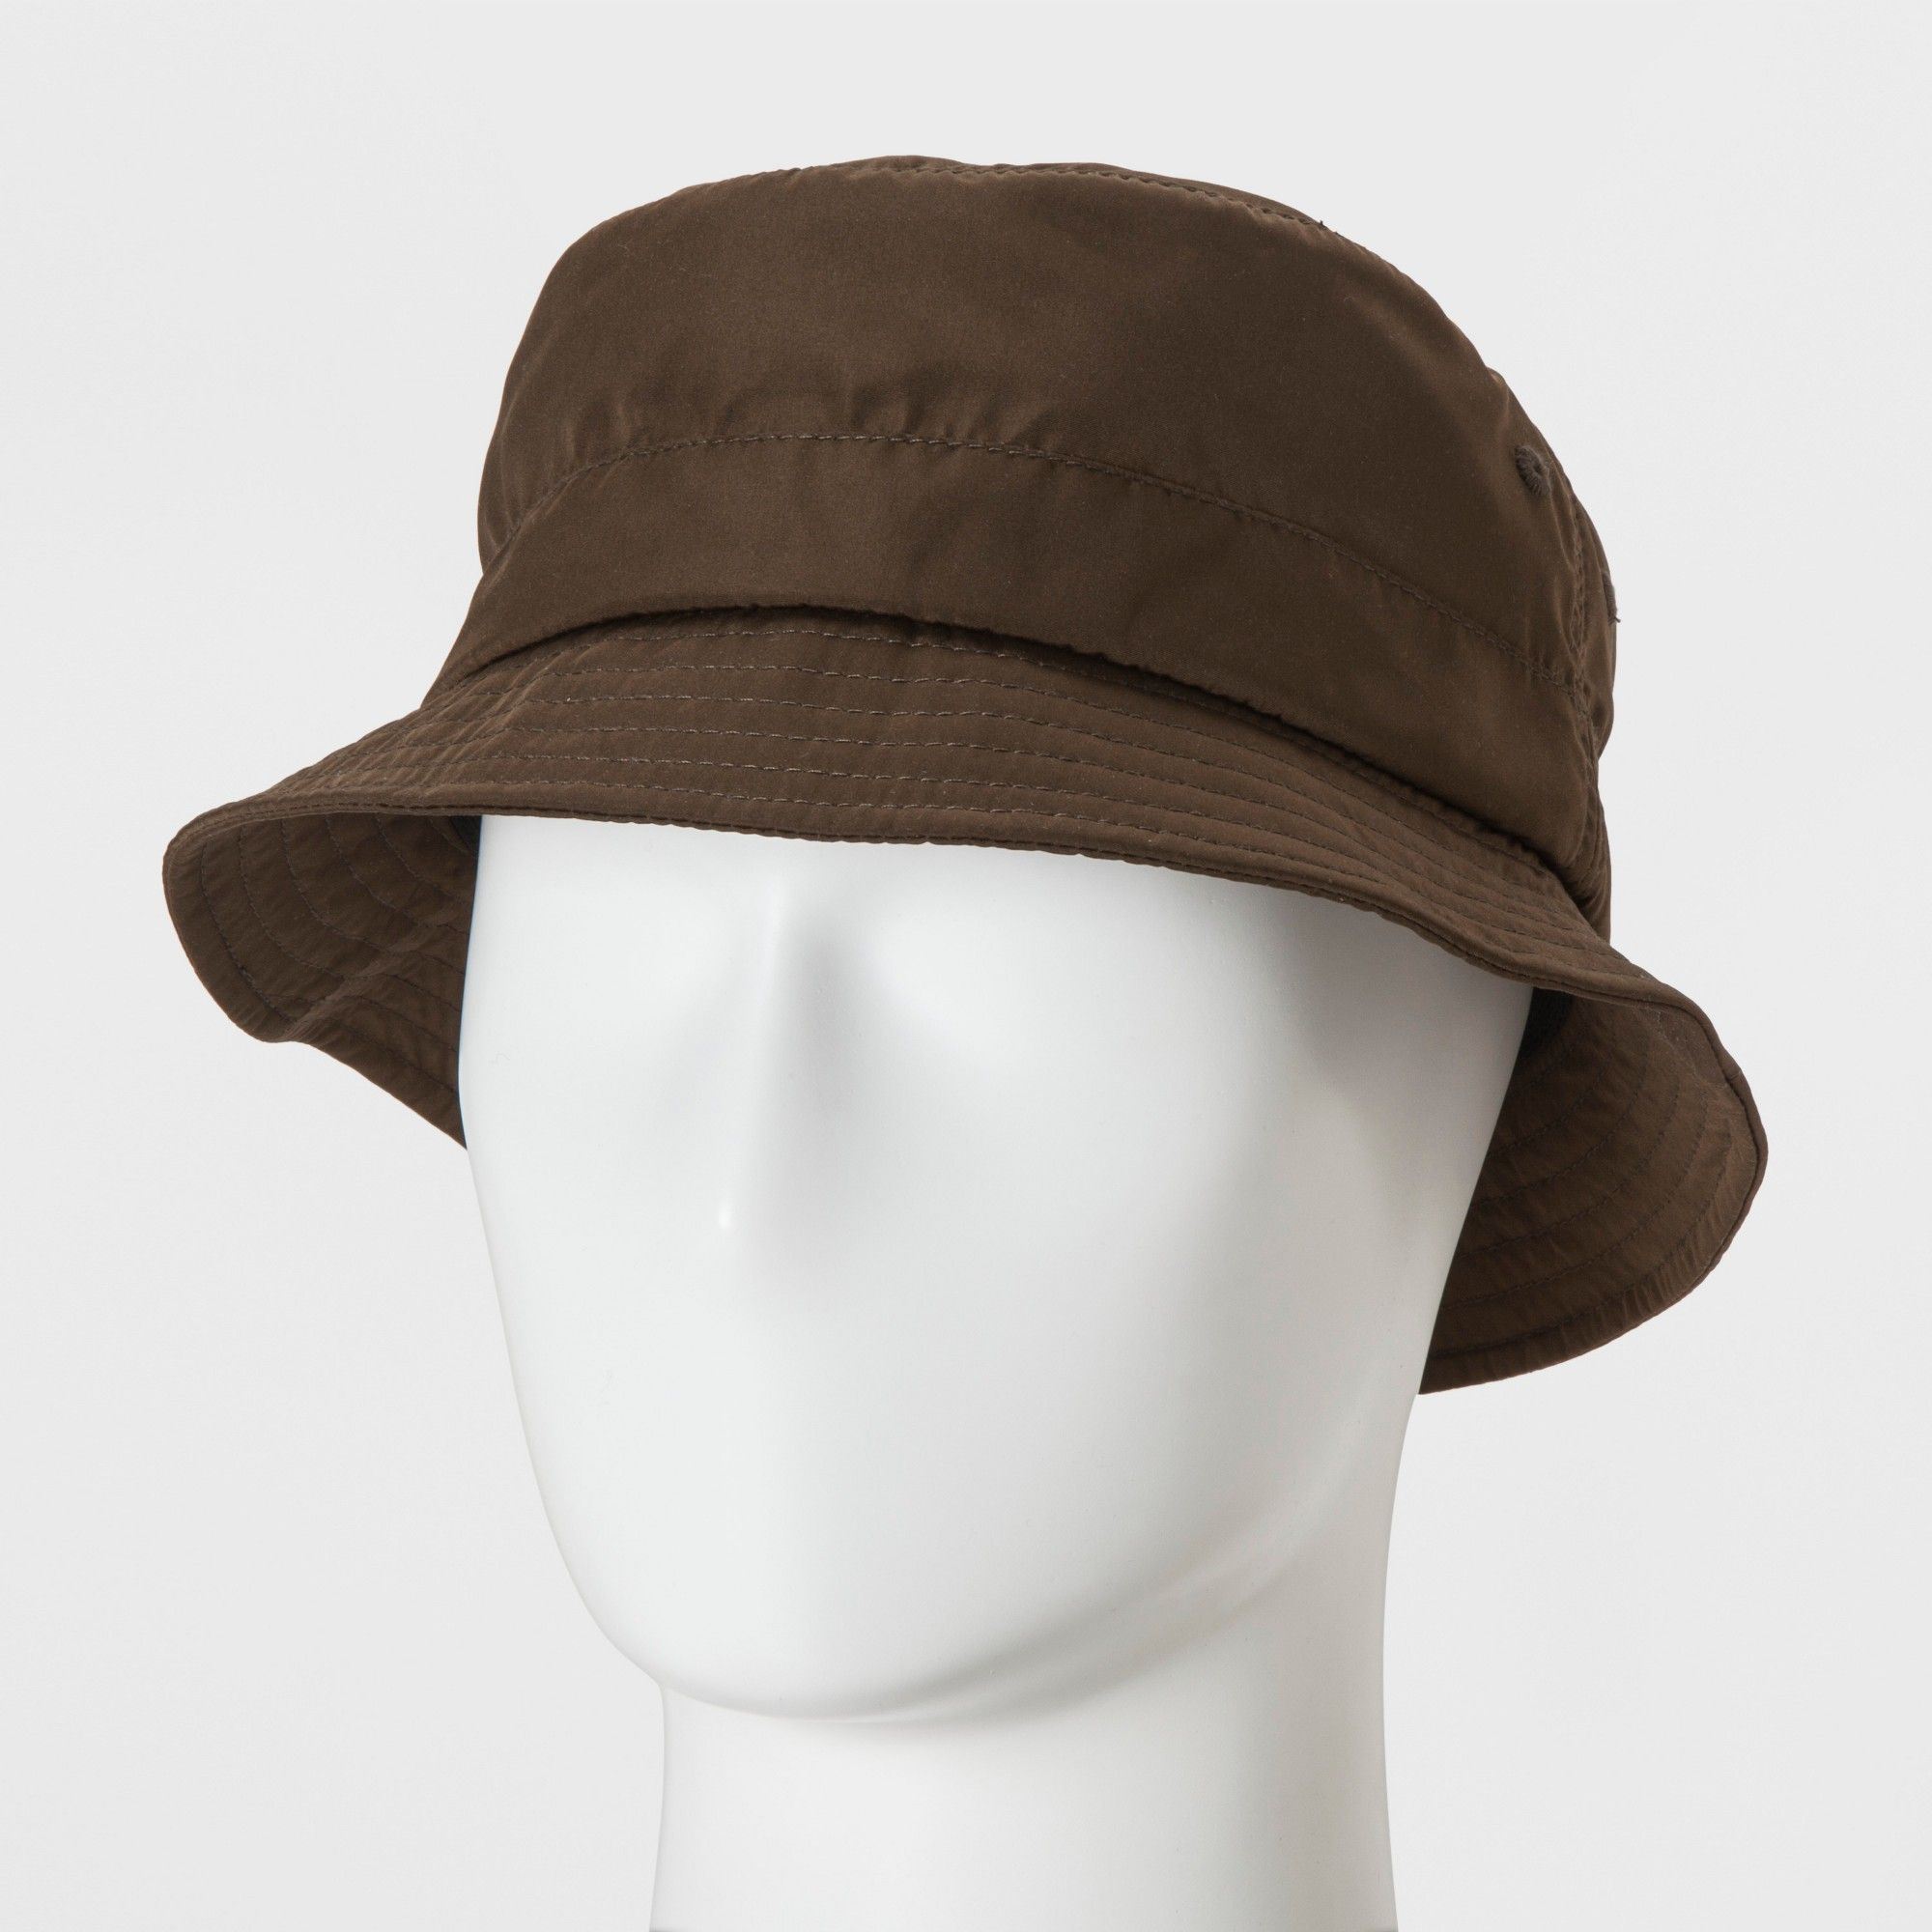 ae0f6a900583c Men s Khaki Fitted Bucket Hat - Goodfellow   Co Brown M L